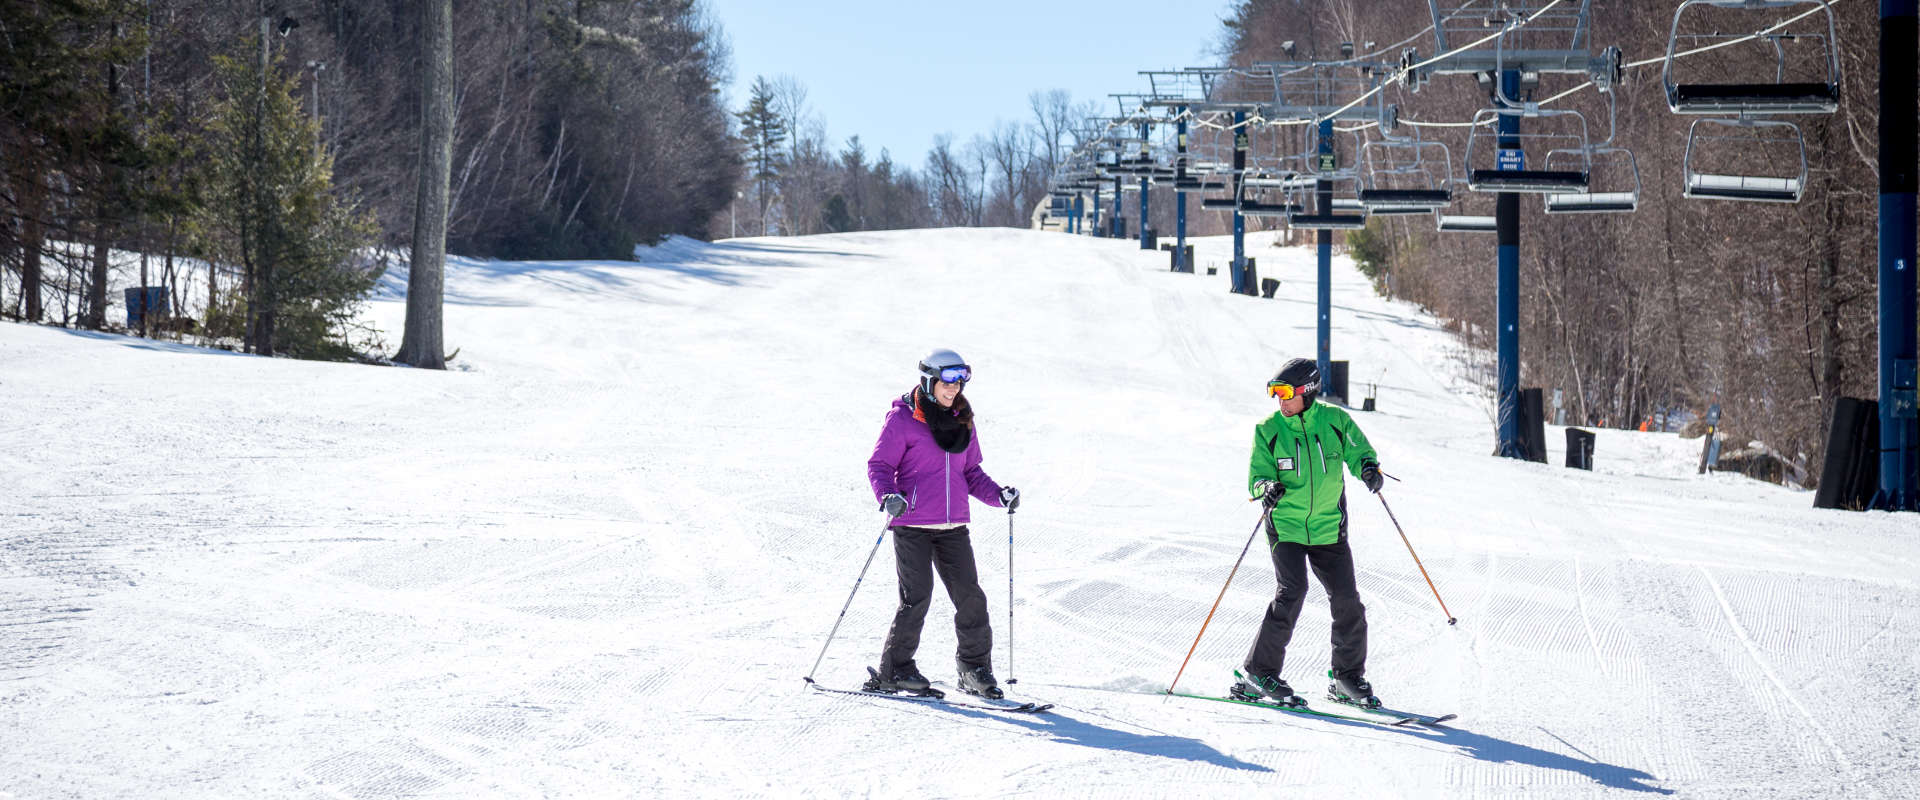 January is National Learn to Ski & Snowboard Month